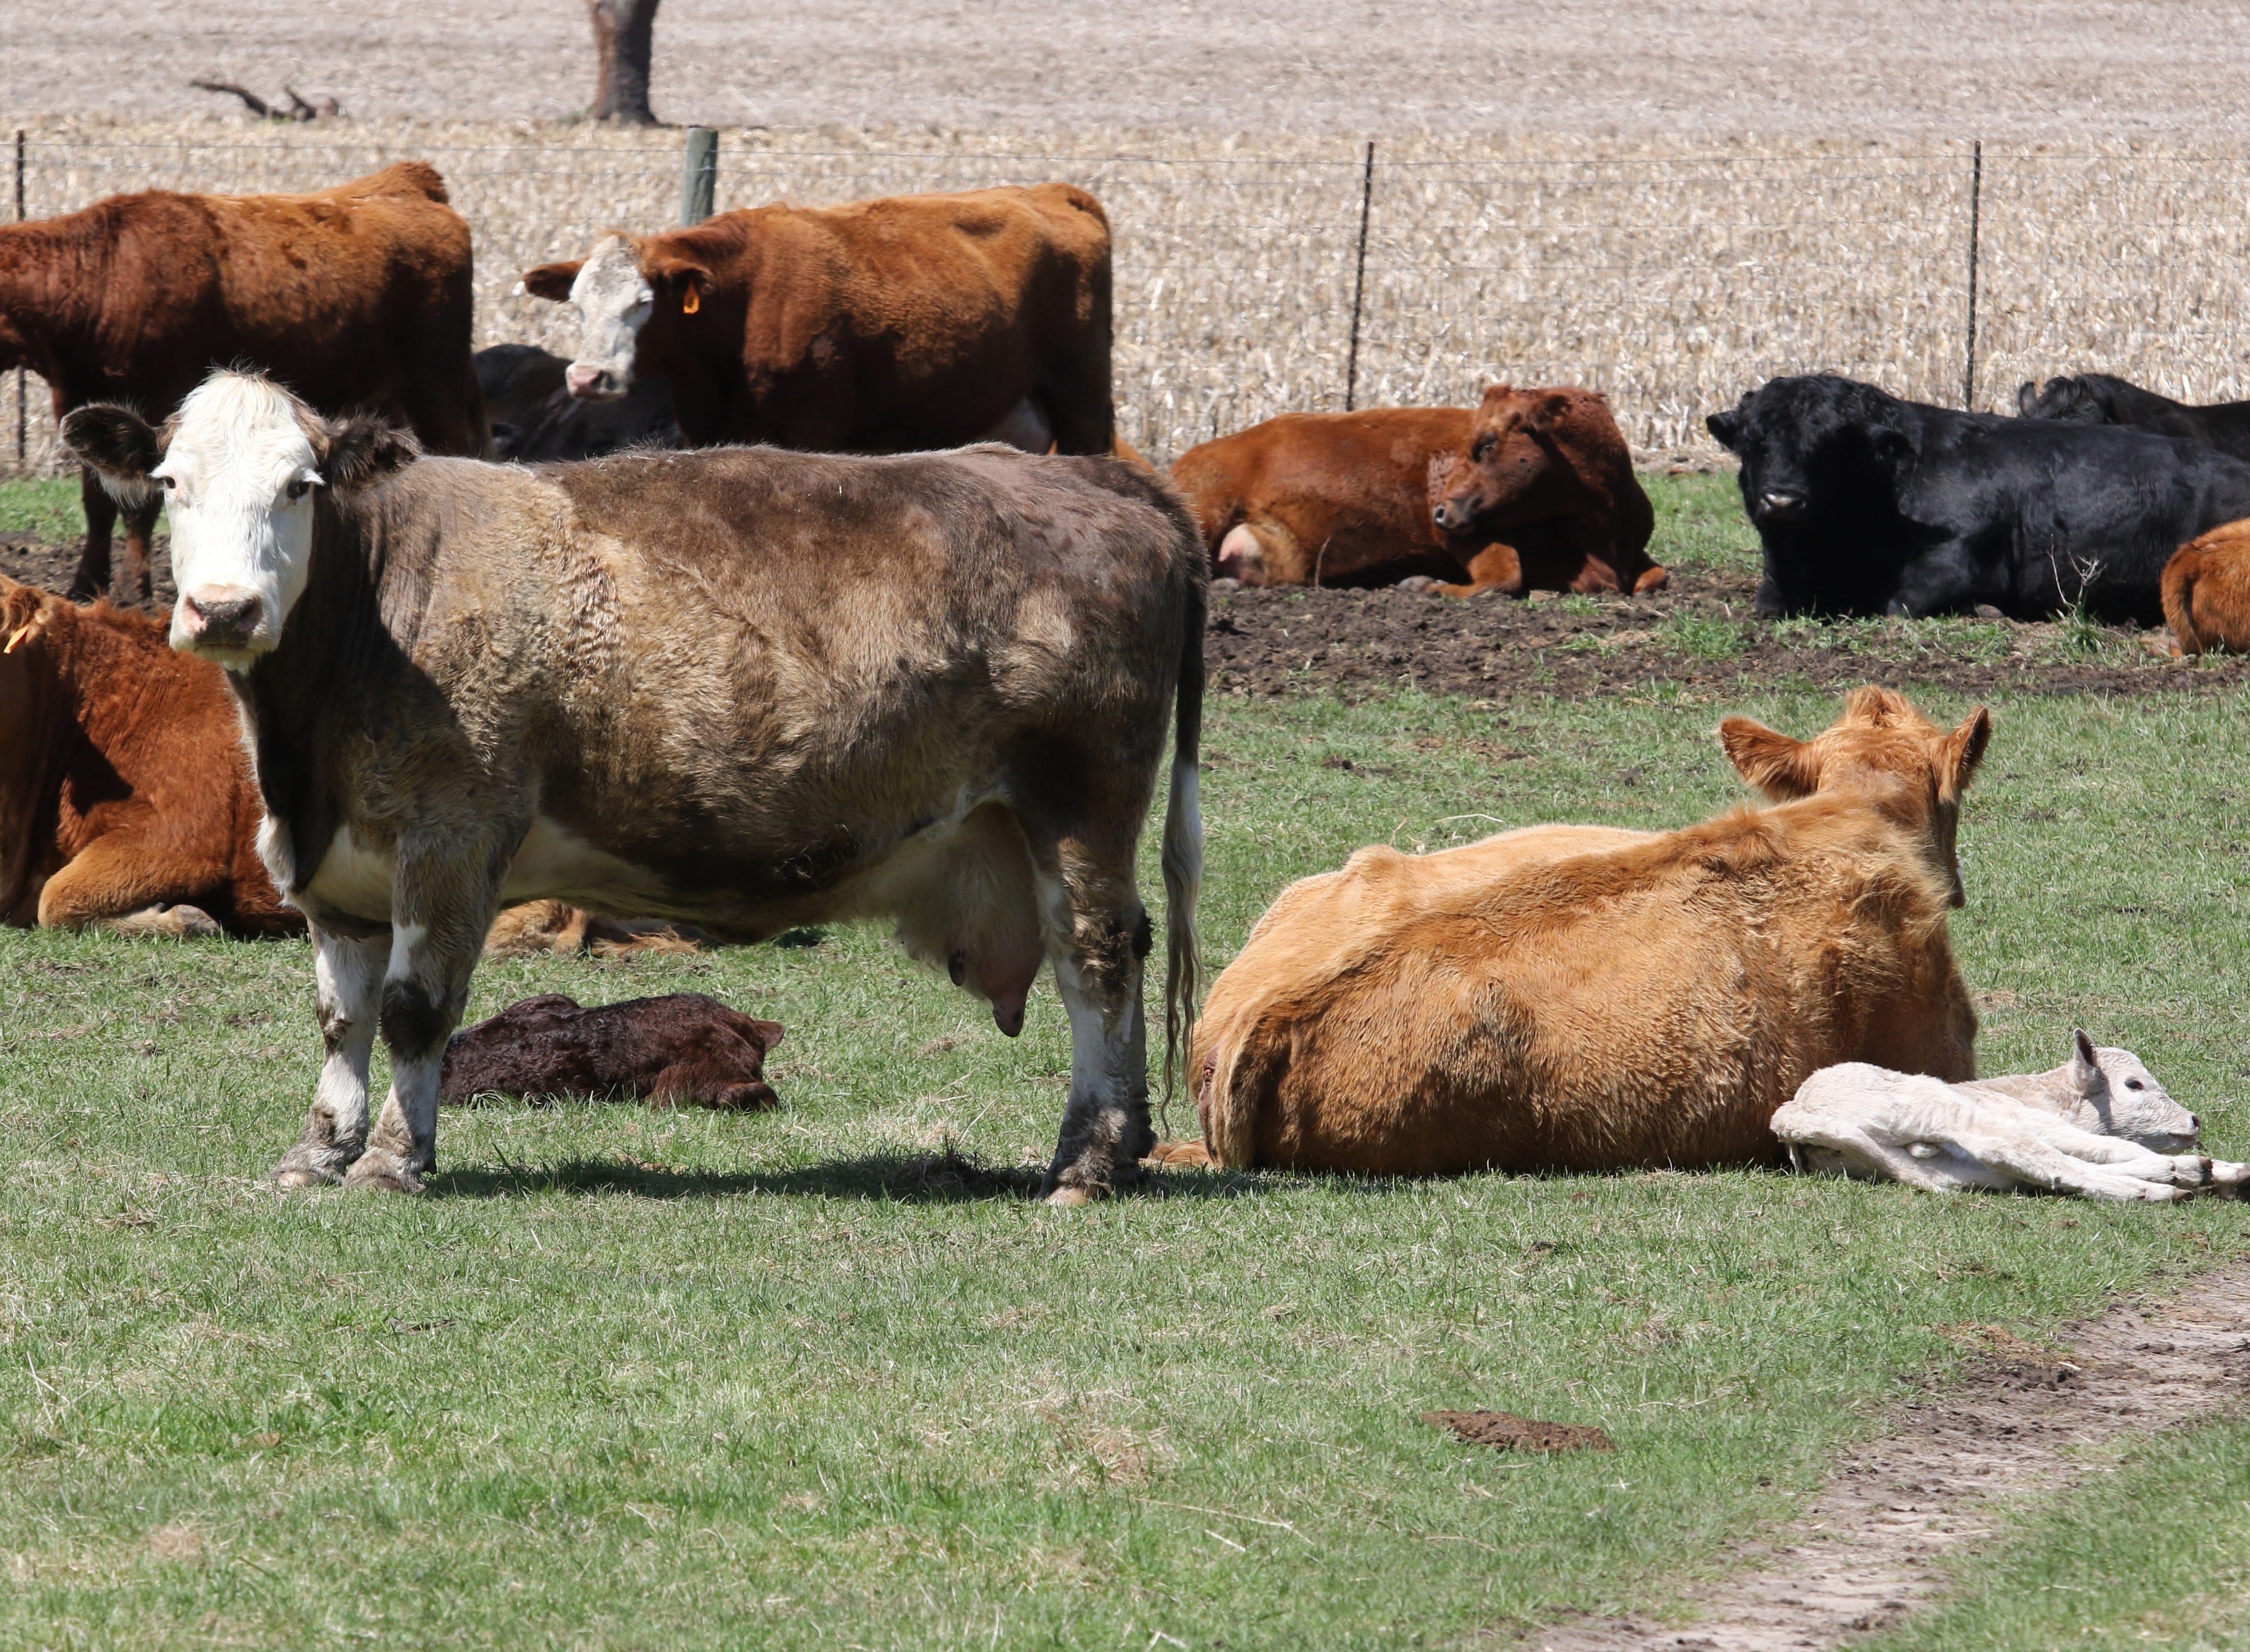 U.S. beef gains full access to Japan